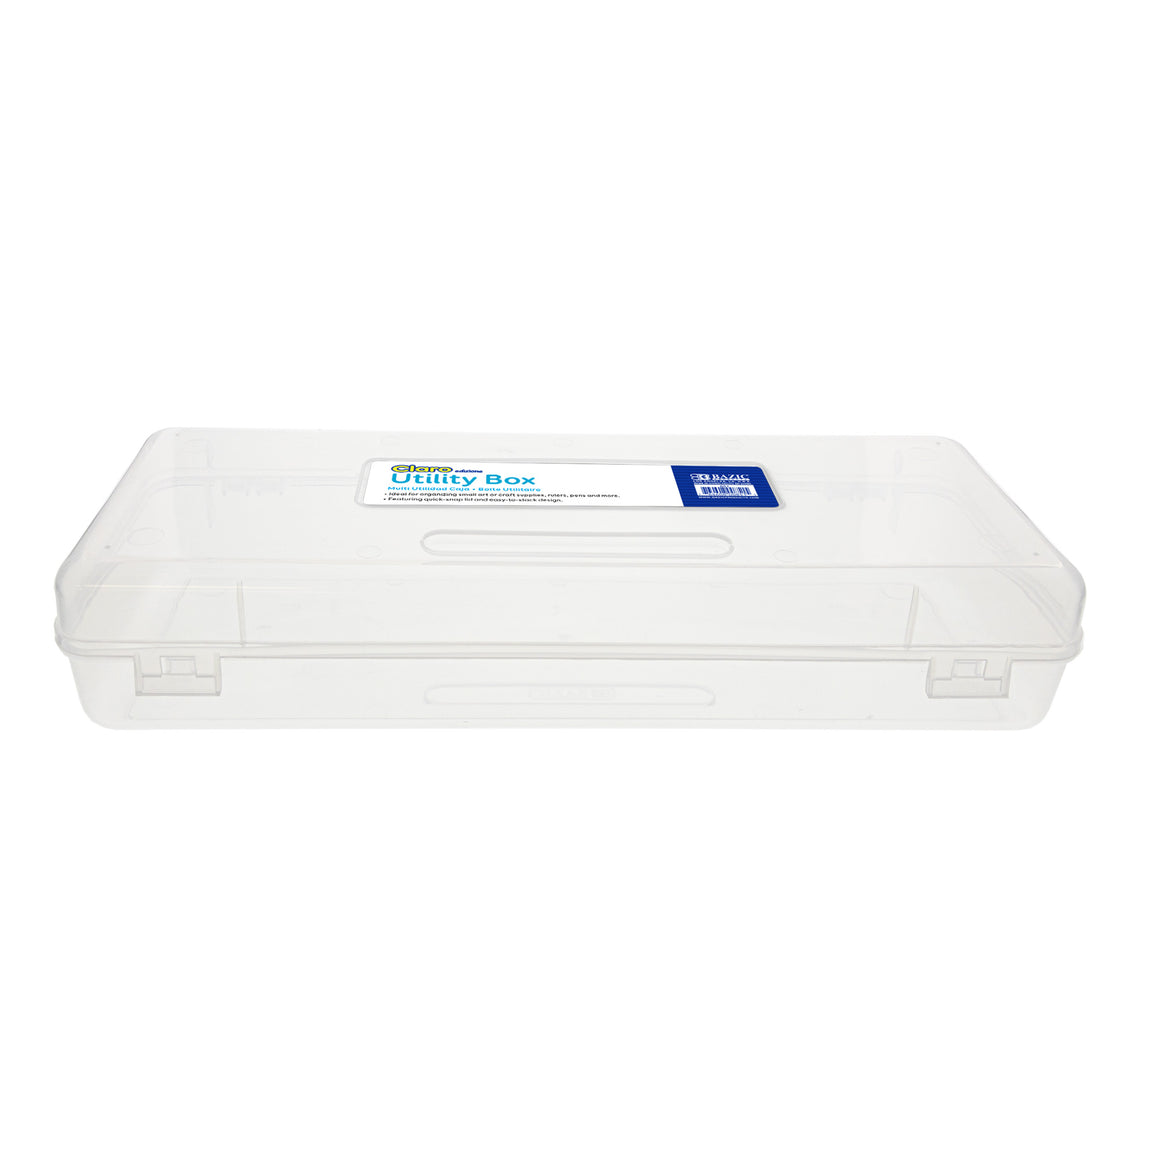 Clear Multipurpose Ruler Length Utility Box - Bazicstore